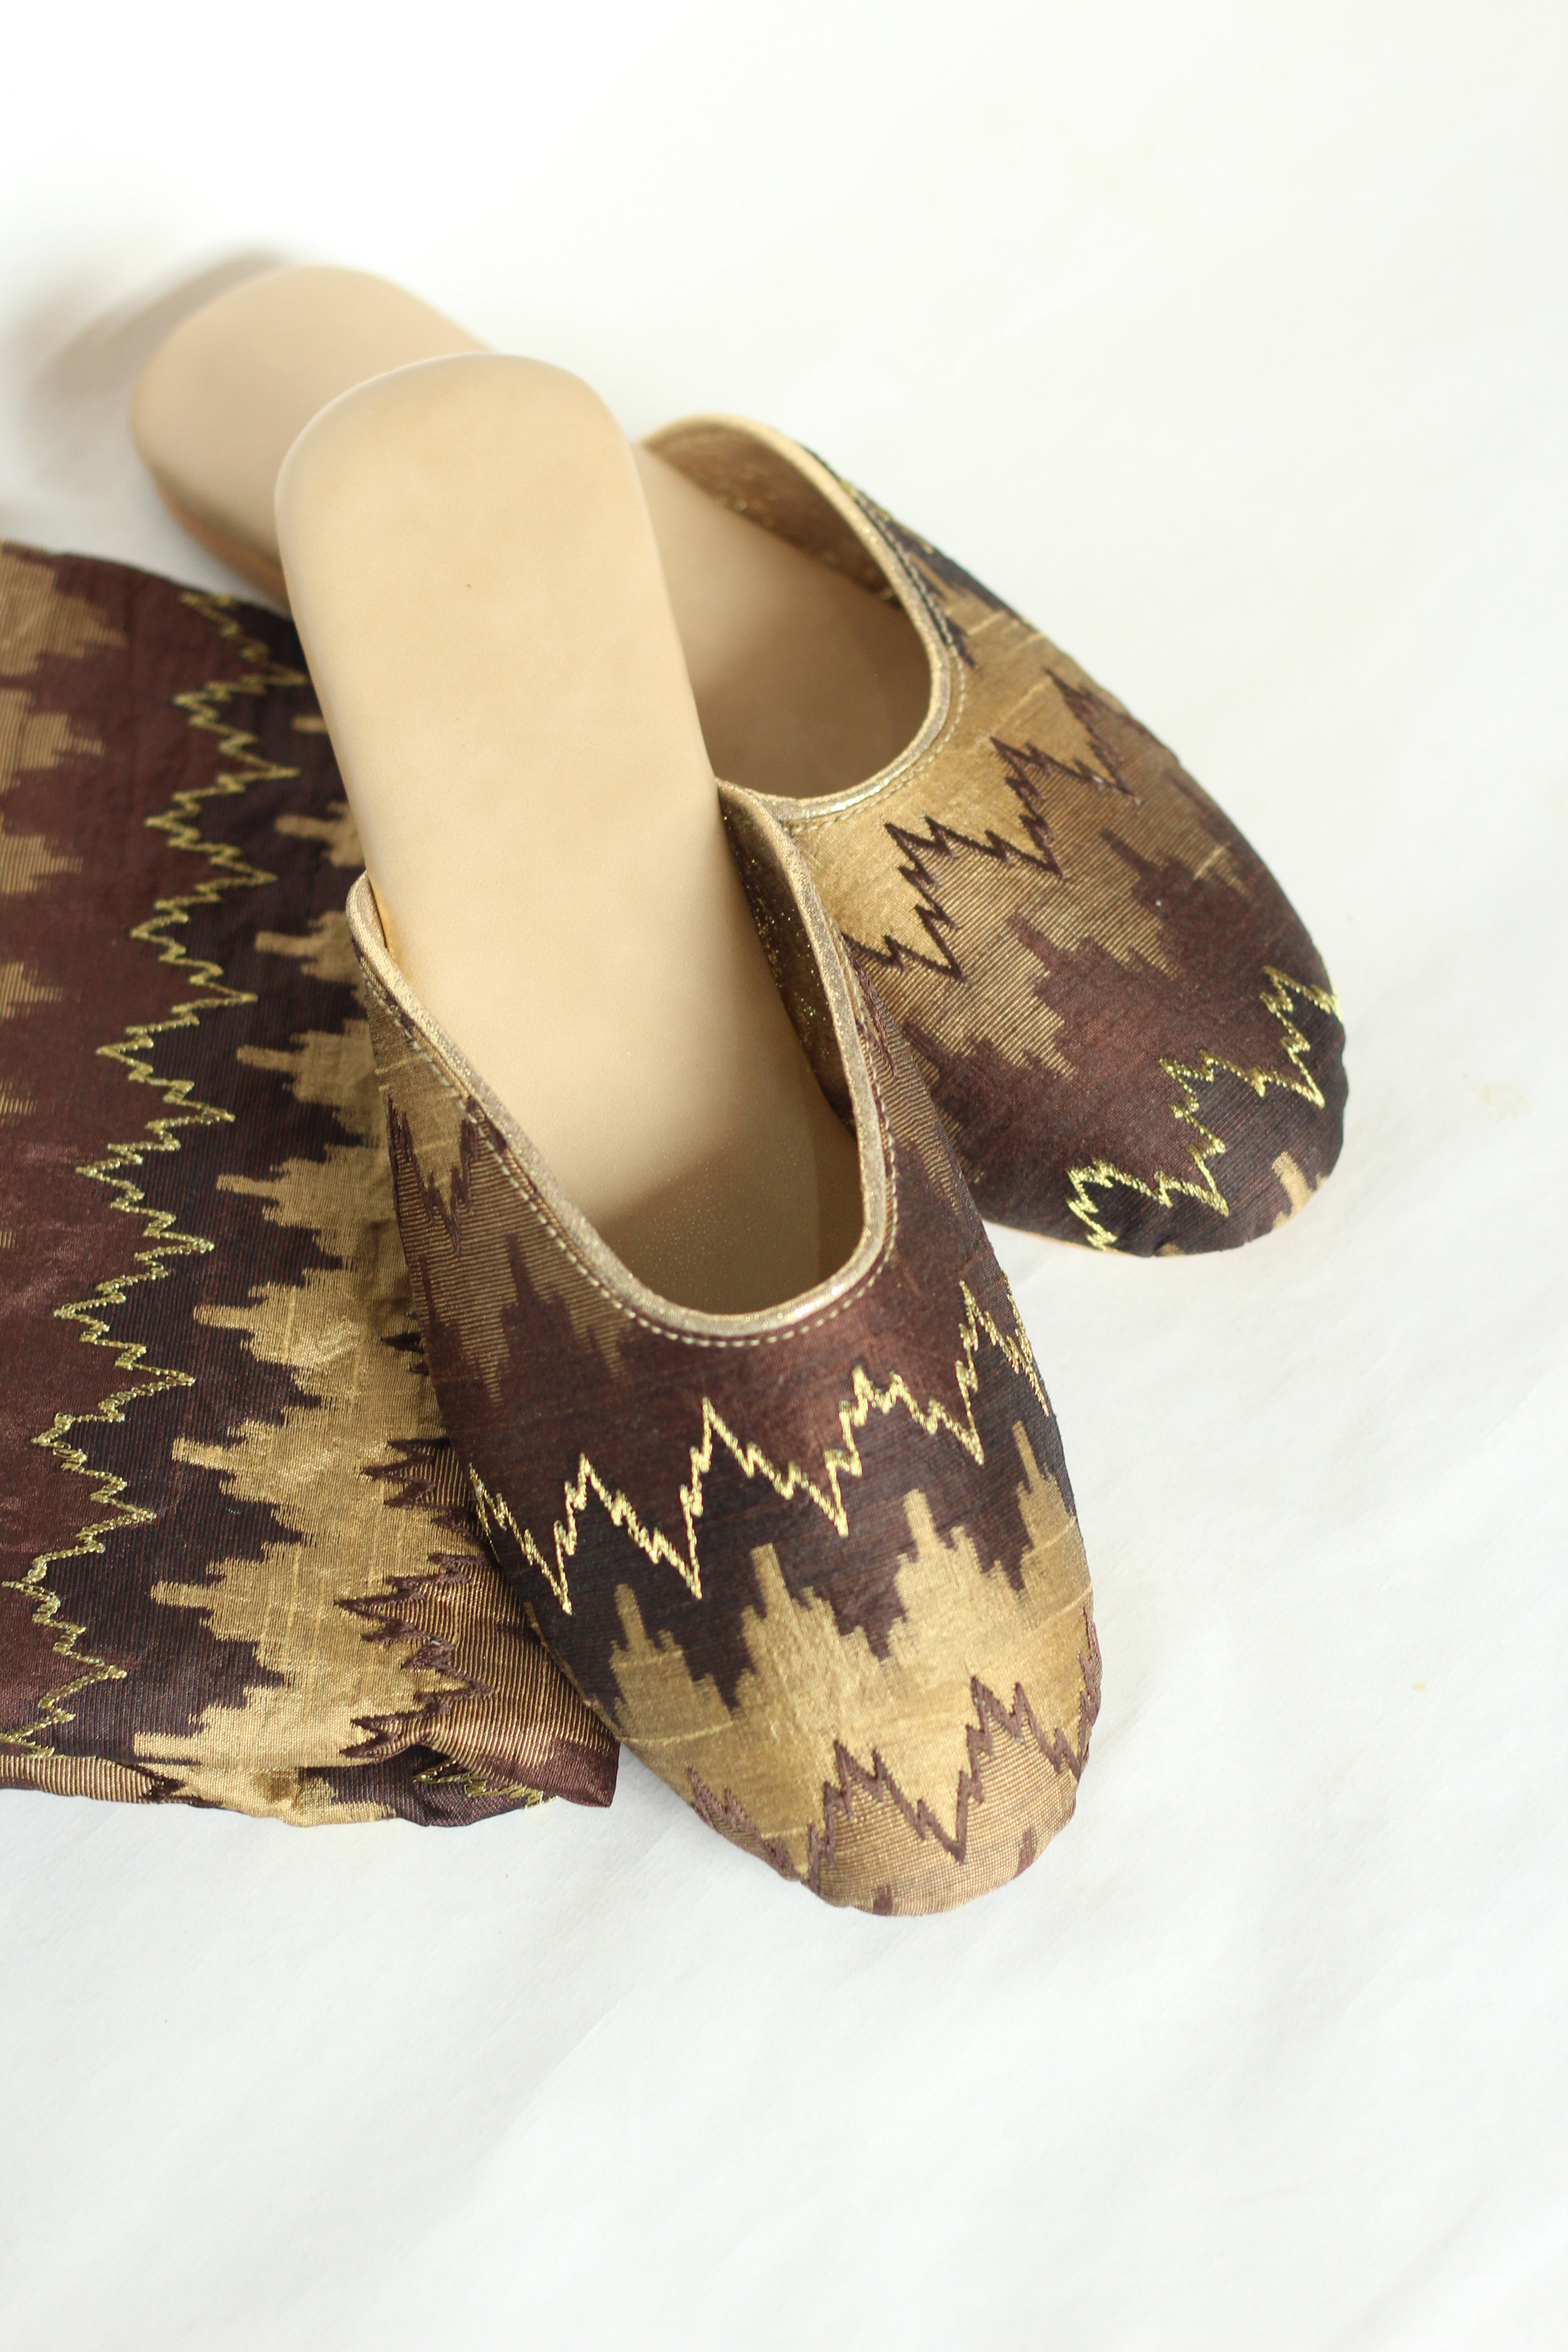 LINEAR DRIFT - BROWN - Easy to wear slip on in warm, earthy colour makes it perfect for all the casual outings